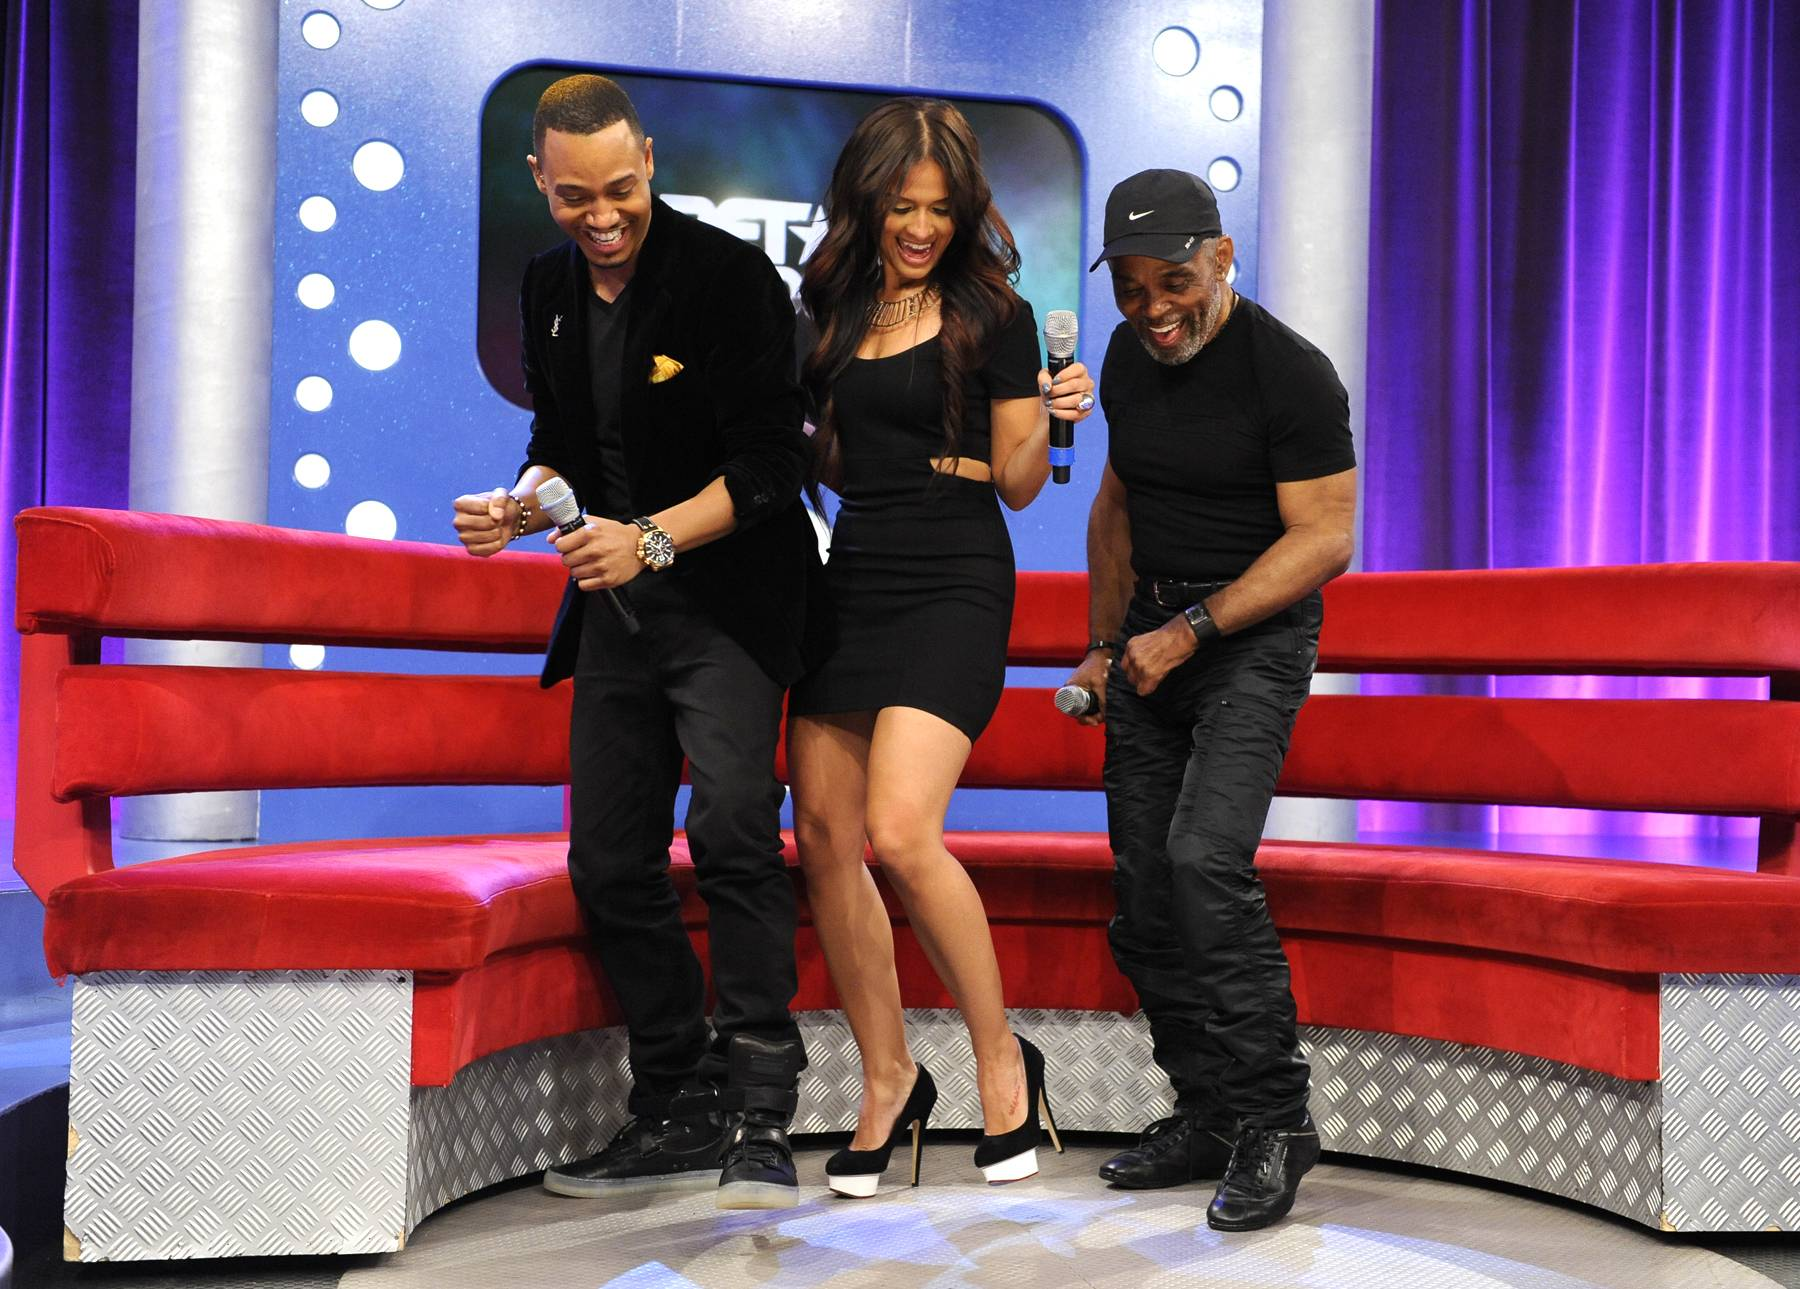 Two-Step - Frankie Beverly with Rocsi Diaz and Terrence J at 106 & Park, May 22, 2012. (Photo: John Ricard / BET)